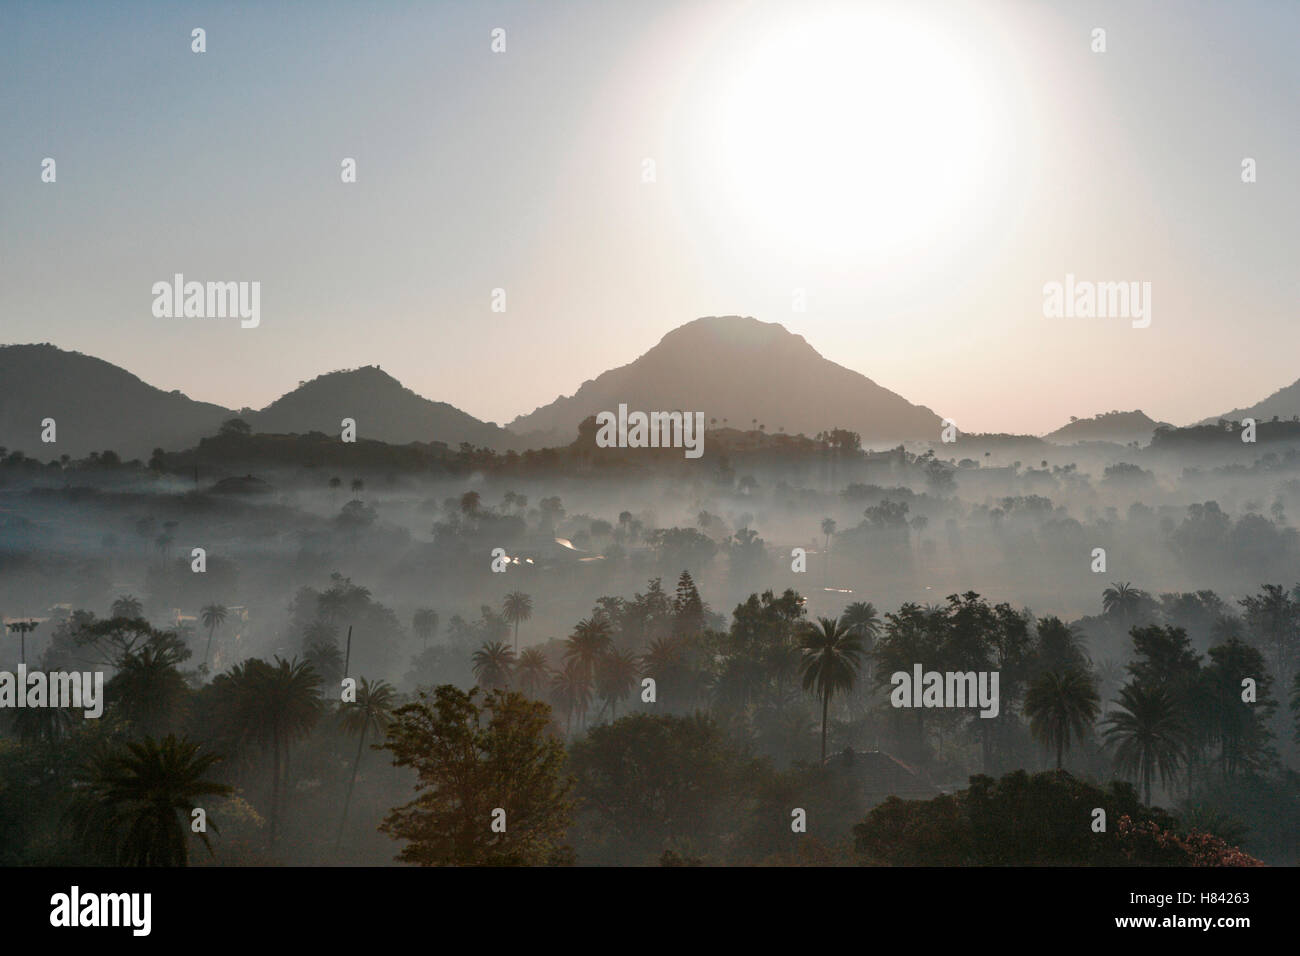 Landscape from Mount Abu. Rajasthan, India. - Stock Image